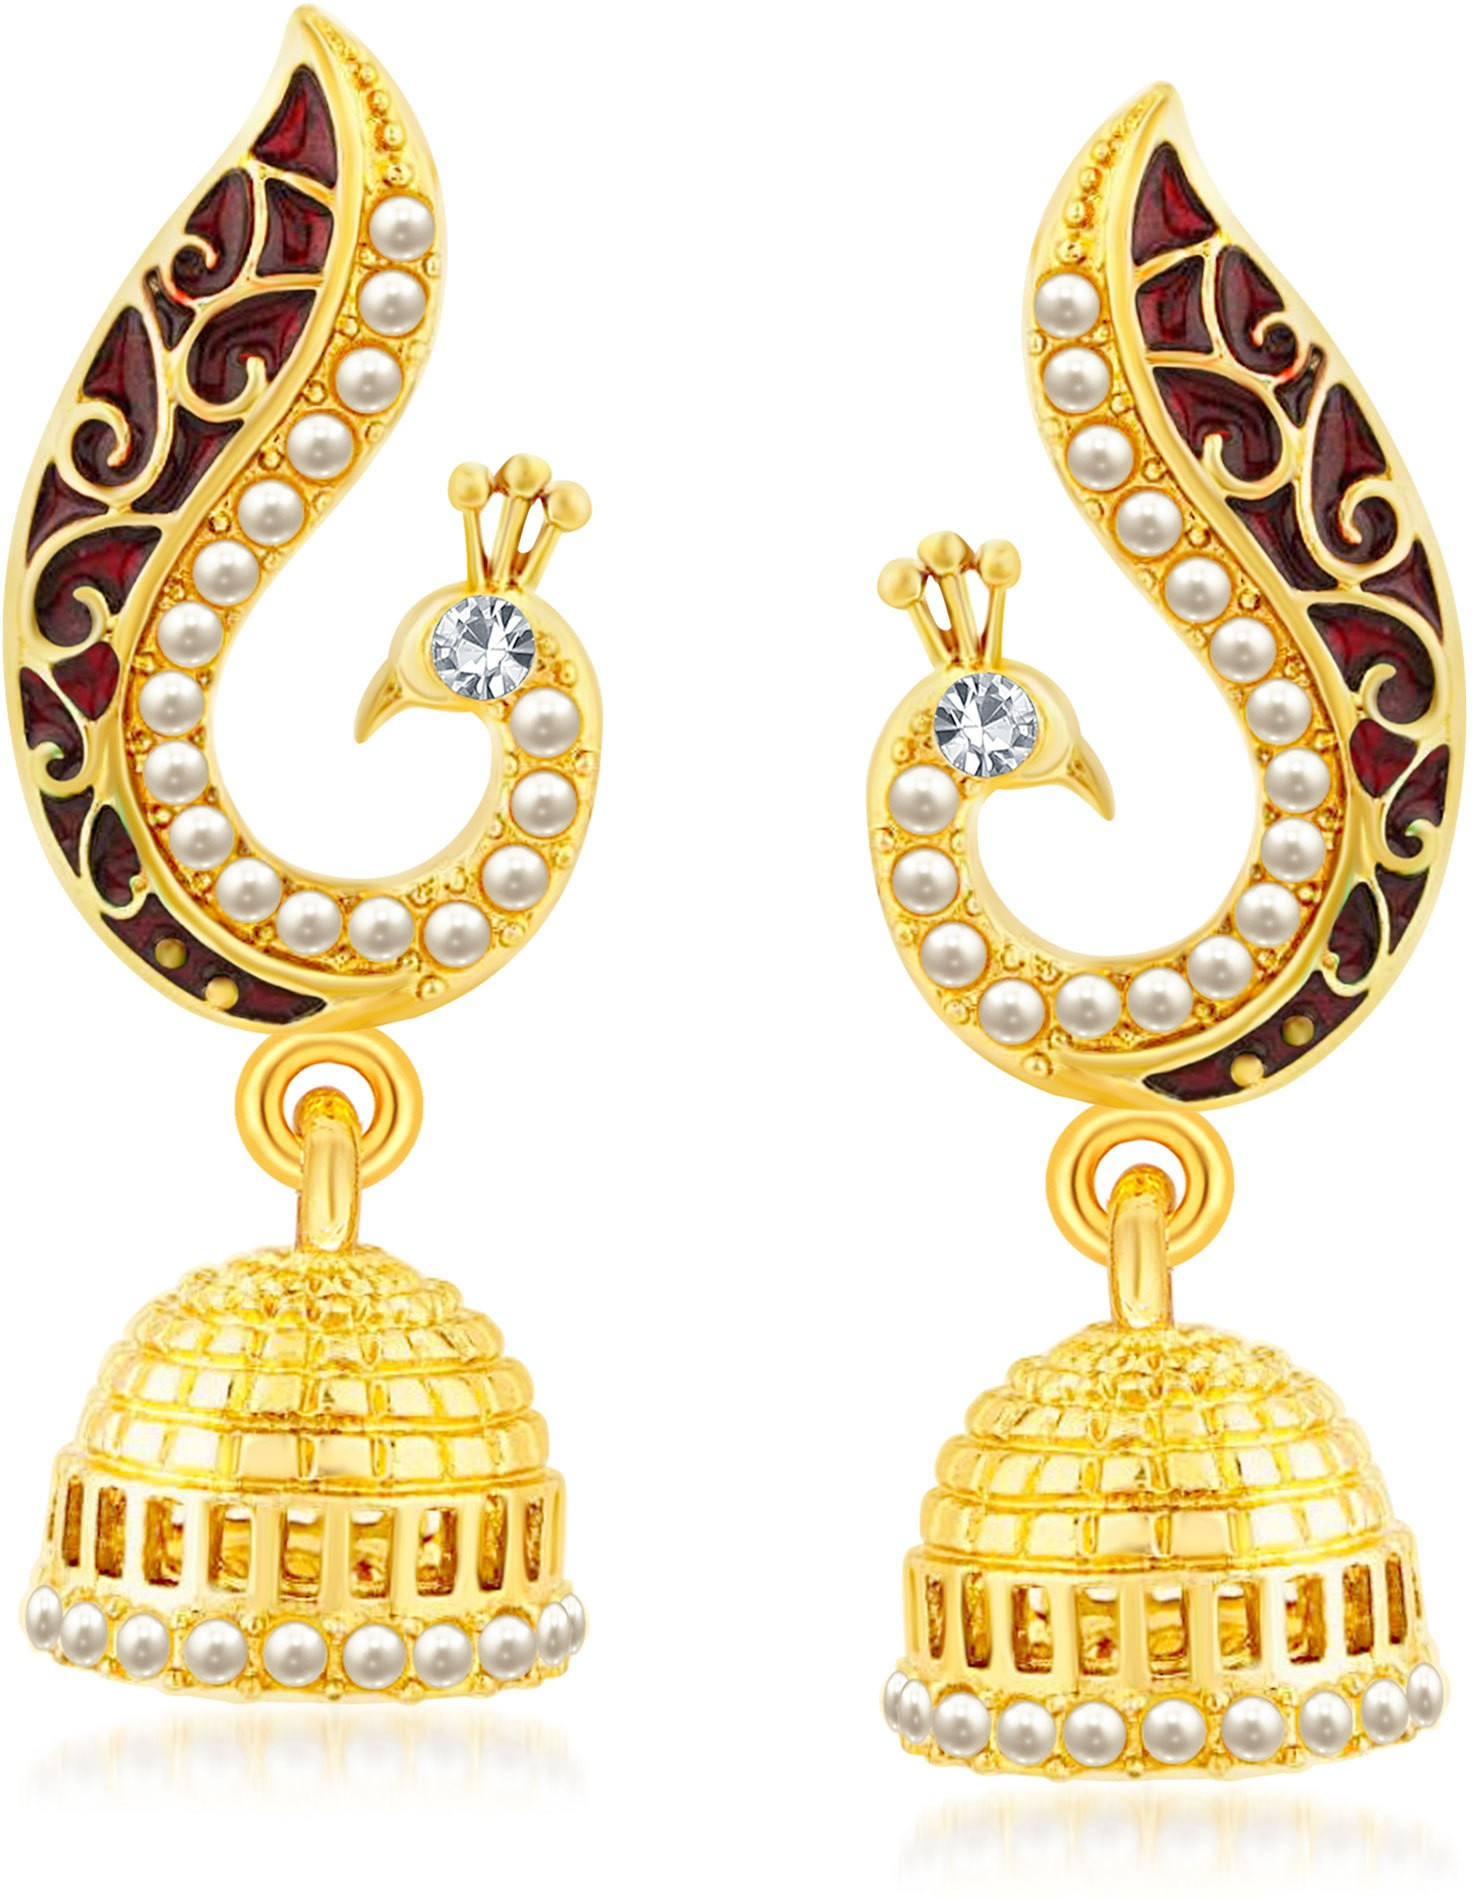 Flipkart - Earrings, Rings, Pendants... Fashion Jewellery